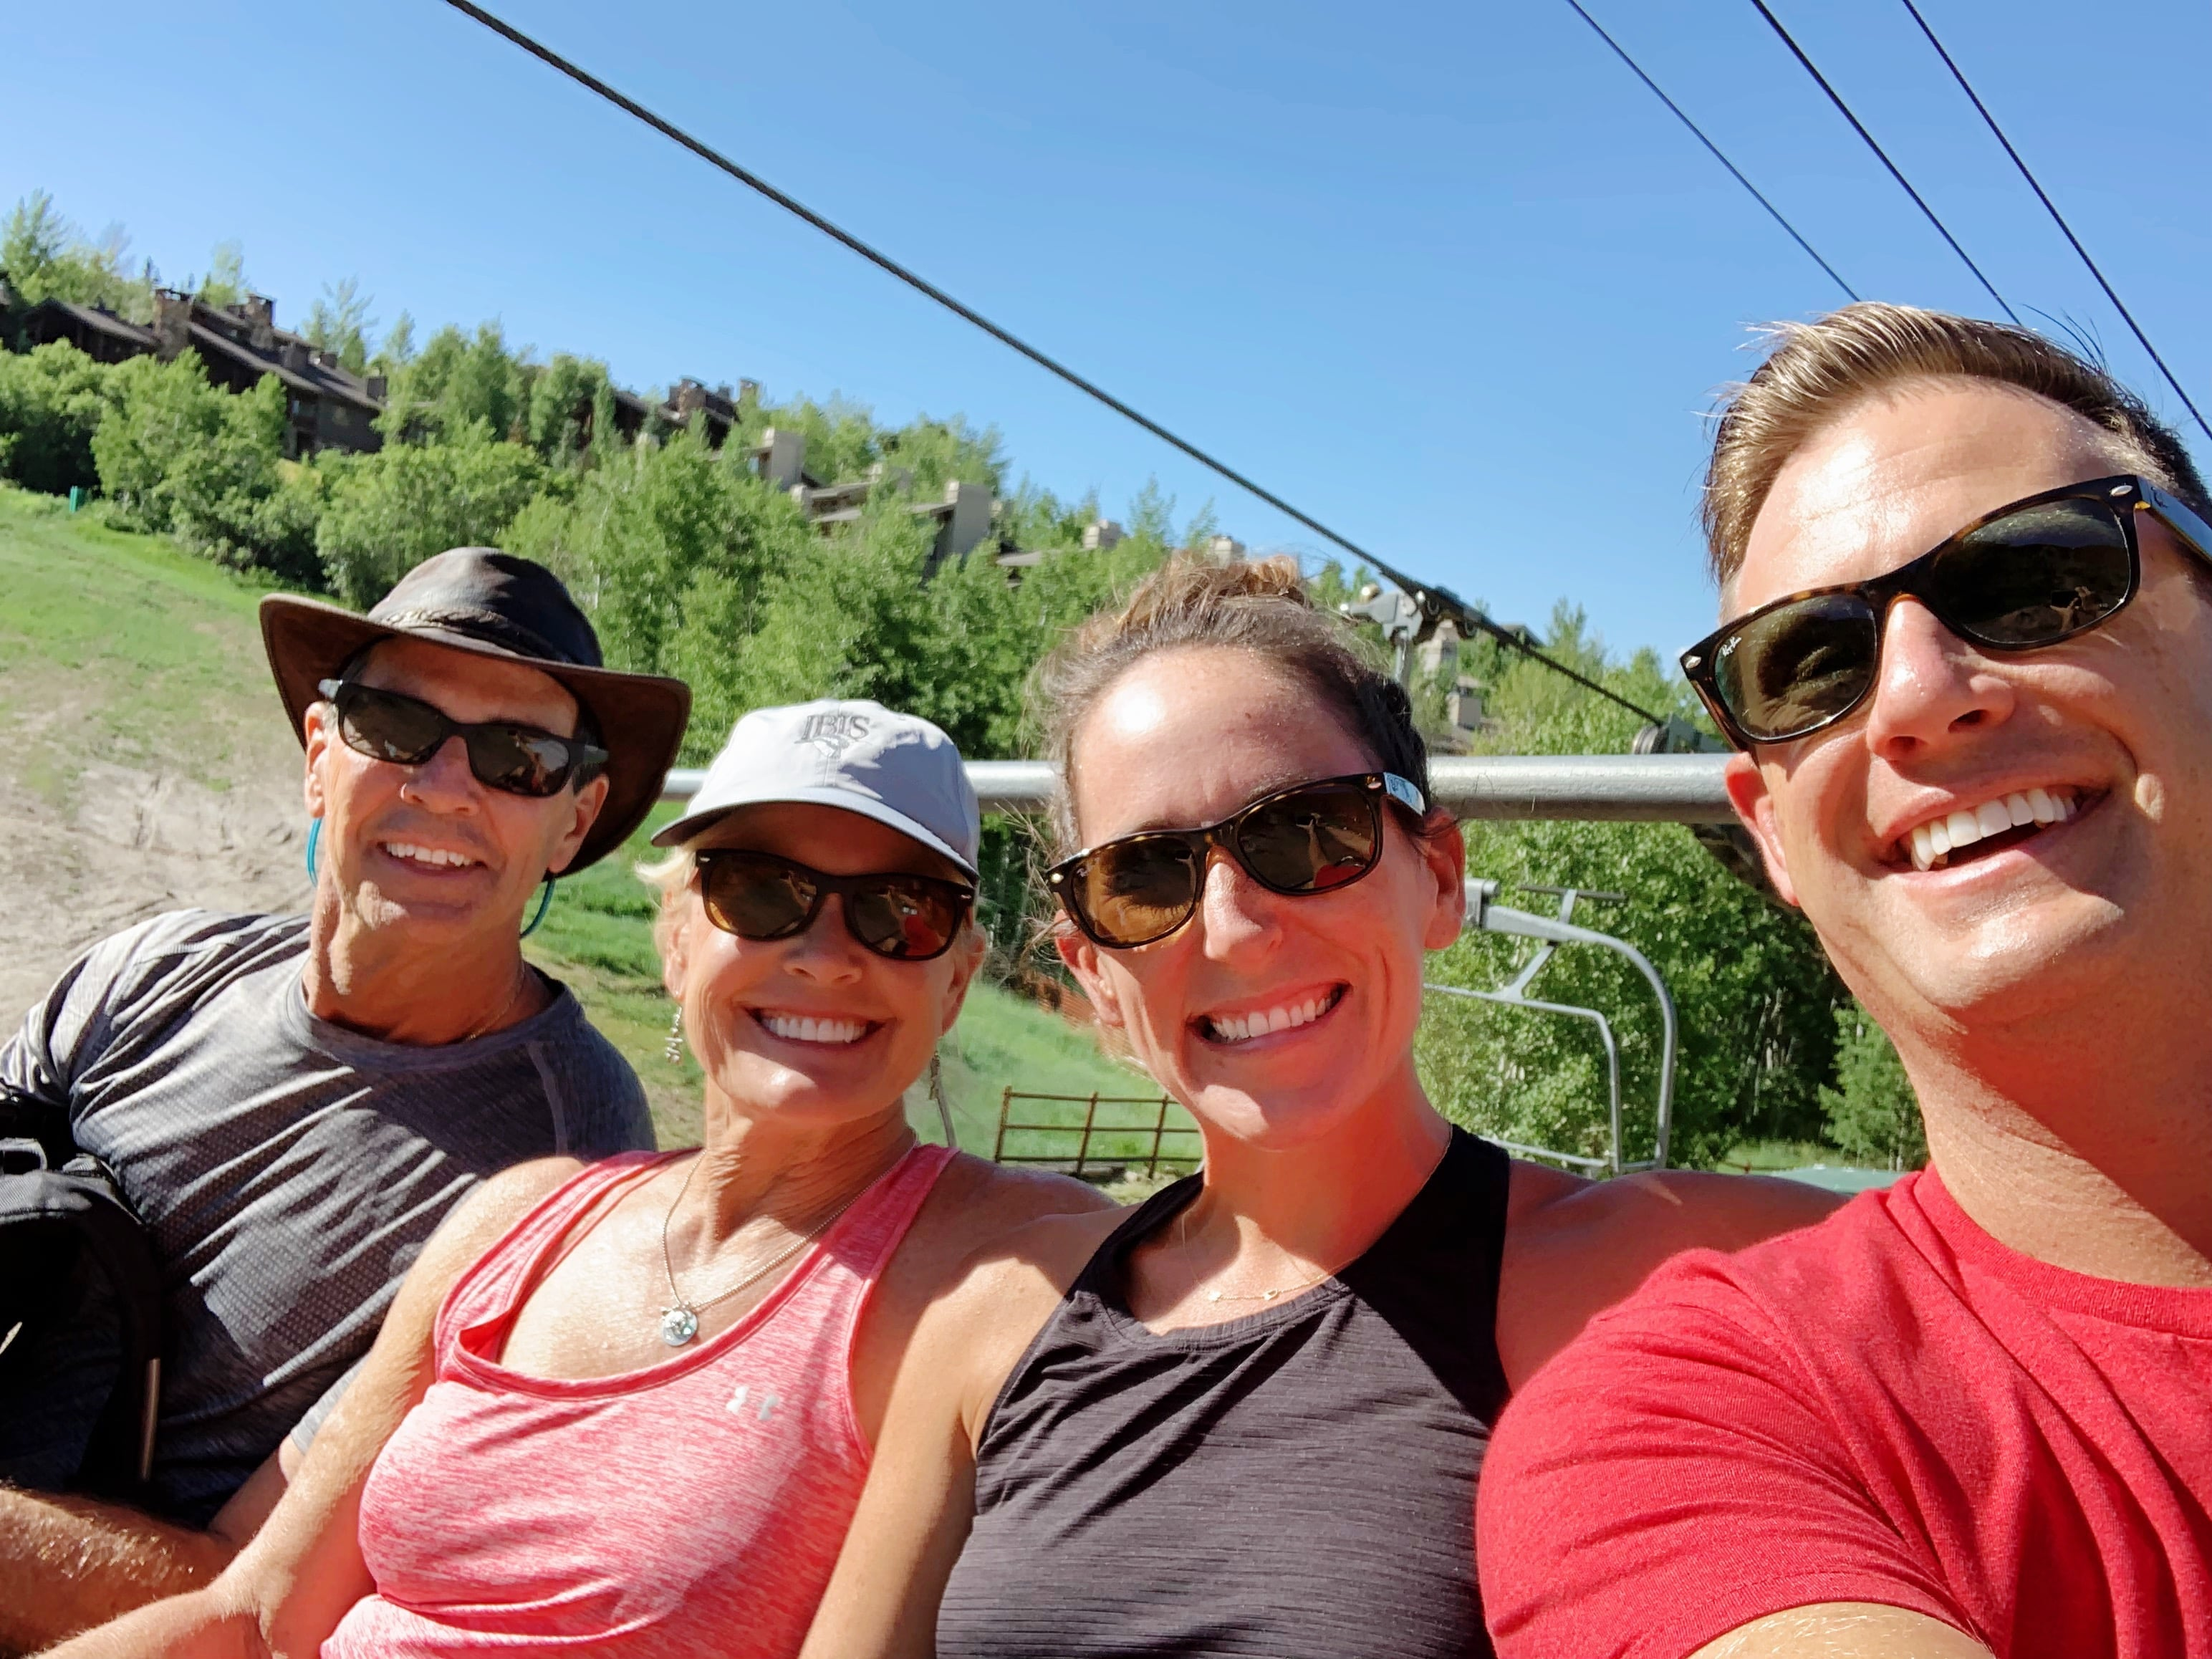 A Weekend Guide To Park City, Utah - What to do in Park City Utah - Park City Utah Restaurants - Park City Utah Hotels - Park City Utah Travel Guide